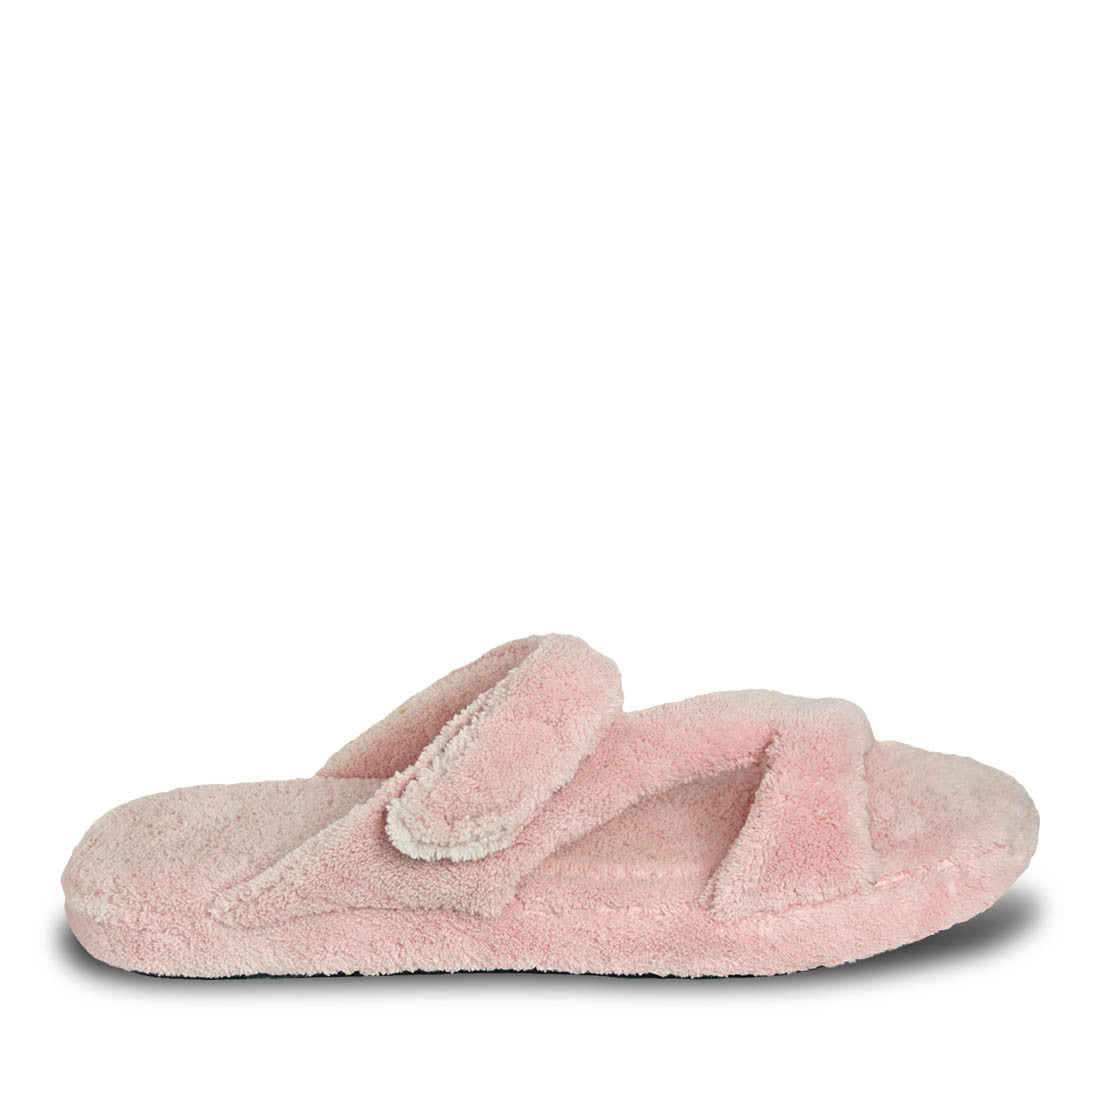 Image of Women's Fluffy Z Slippers - Soft Pink